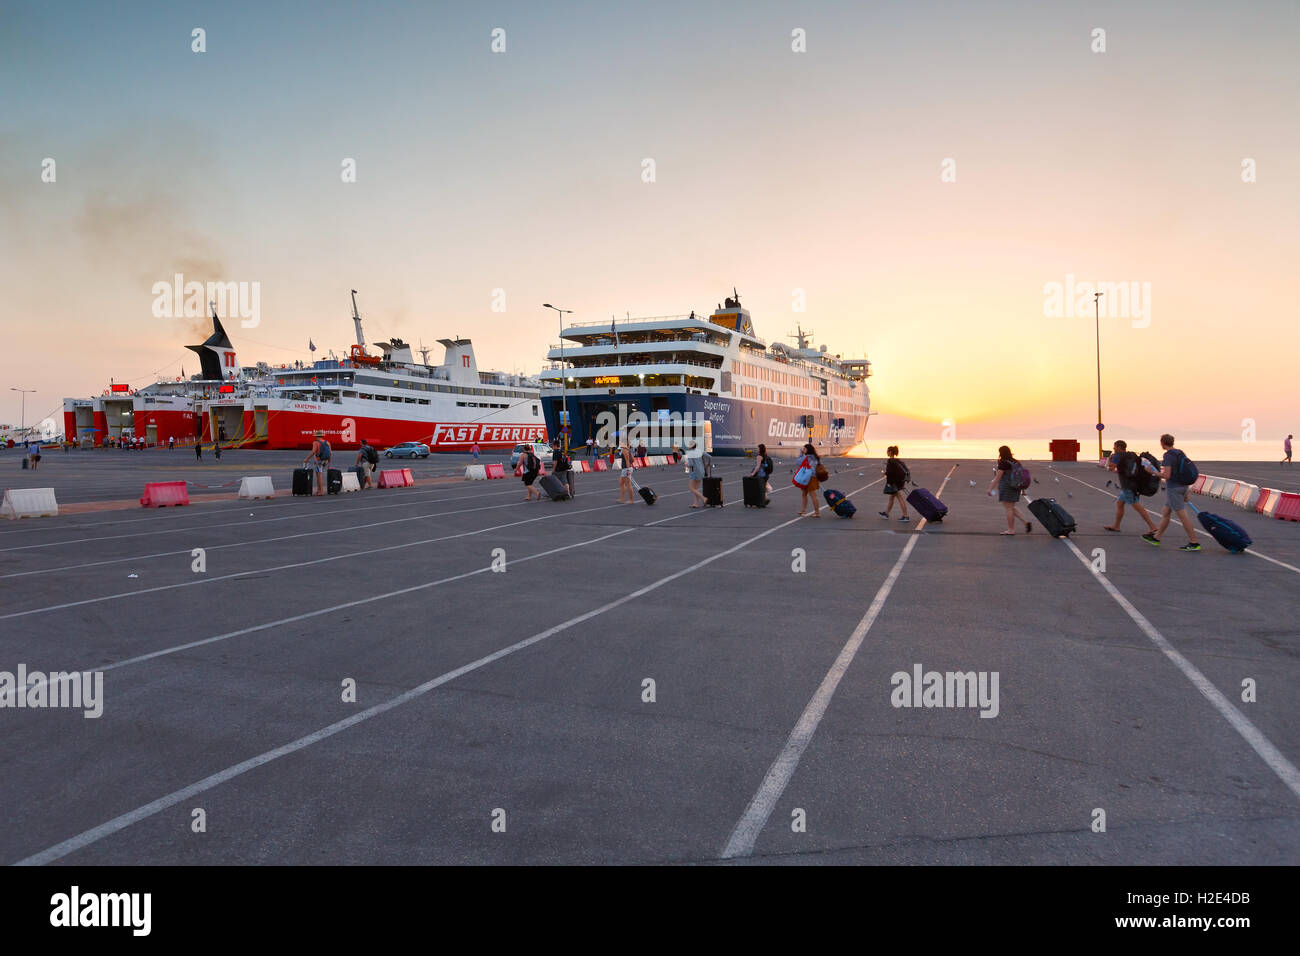 Tourists in passenger port of Rafina. - Stock Image